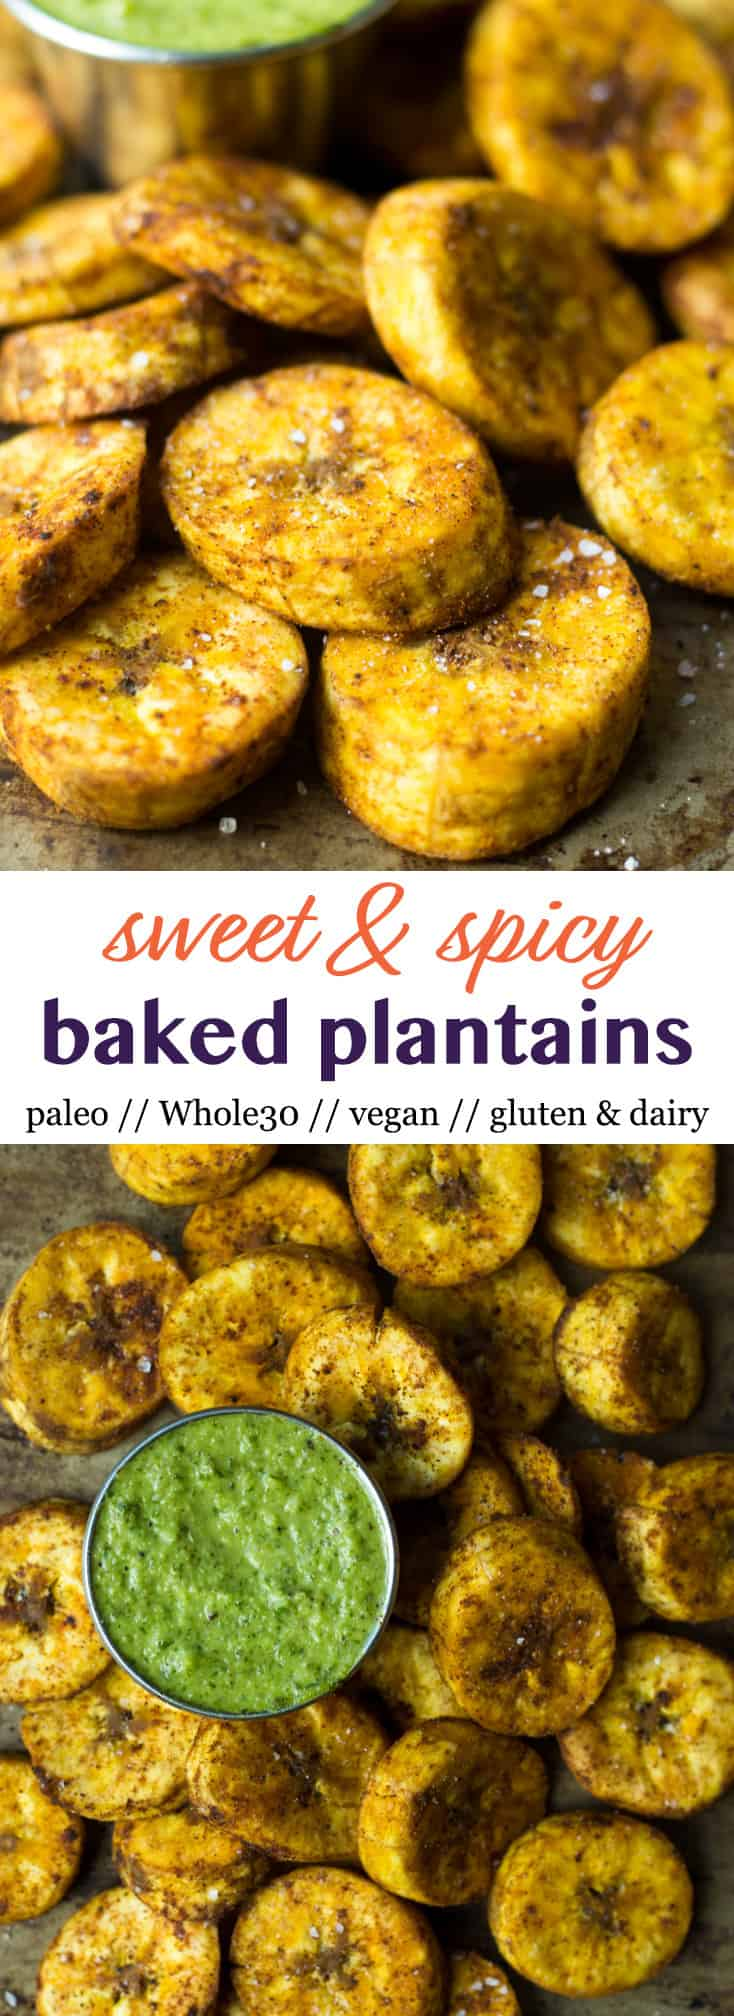 A great carb source, theseSweet & Spicy Baked Plantains are aneasy side for breakfast or dinner and are paleo, vegan, and Whole30 approved! - Eat the Gains